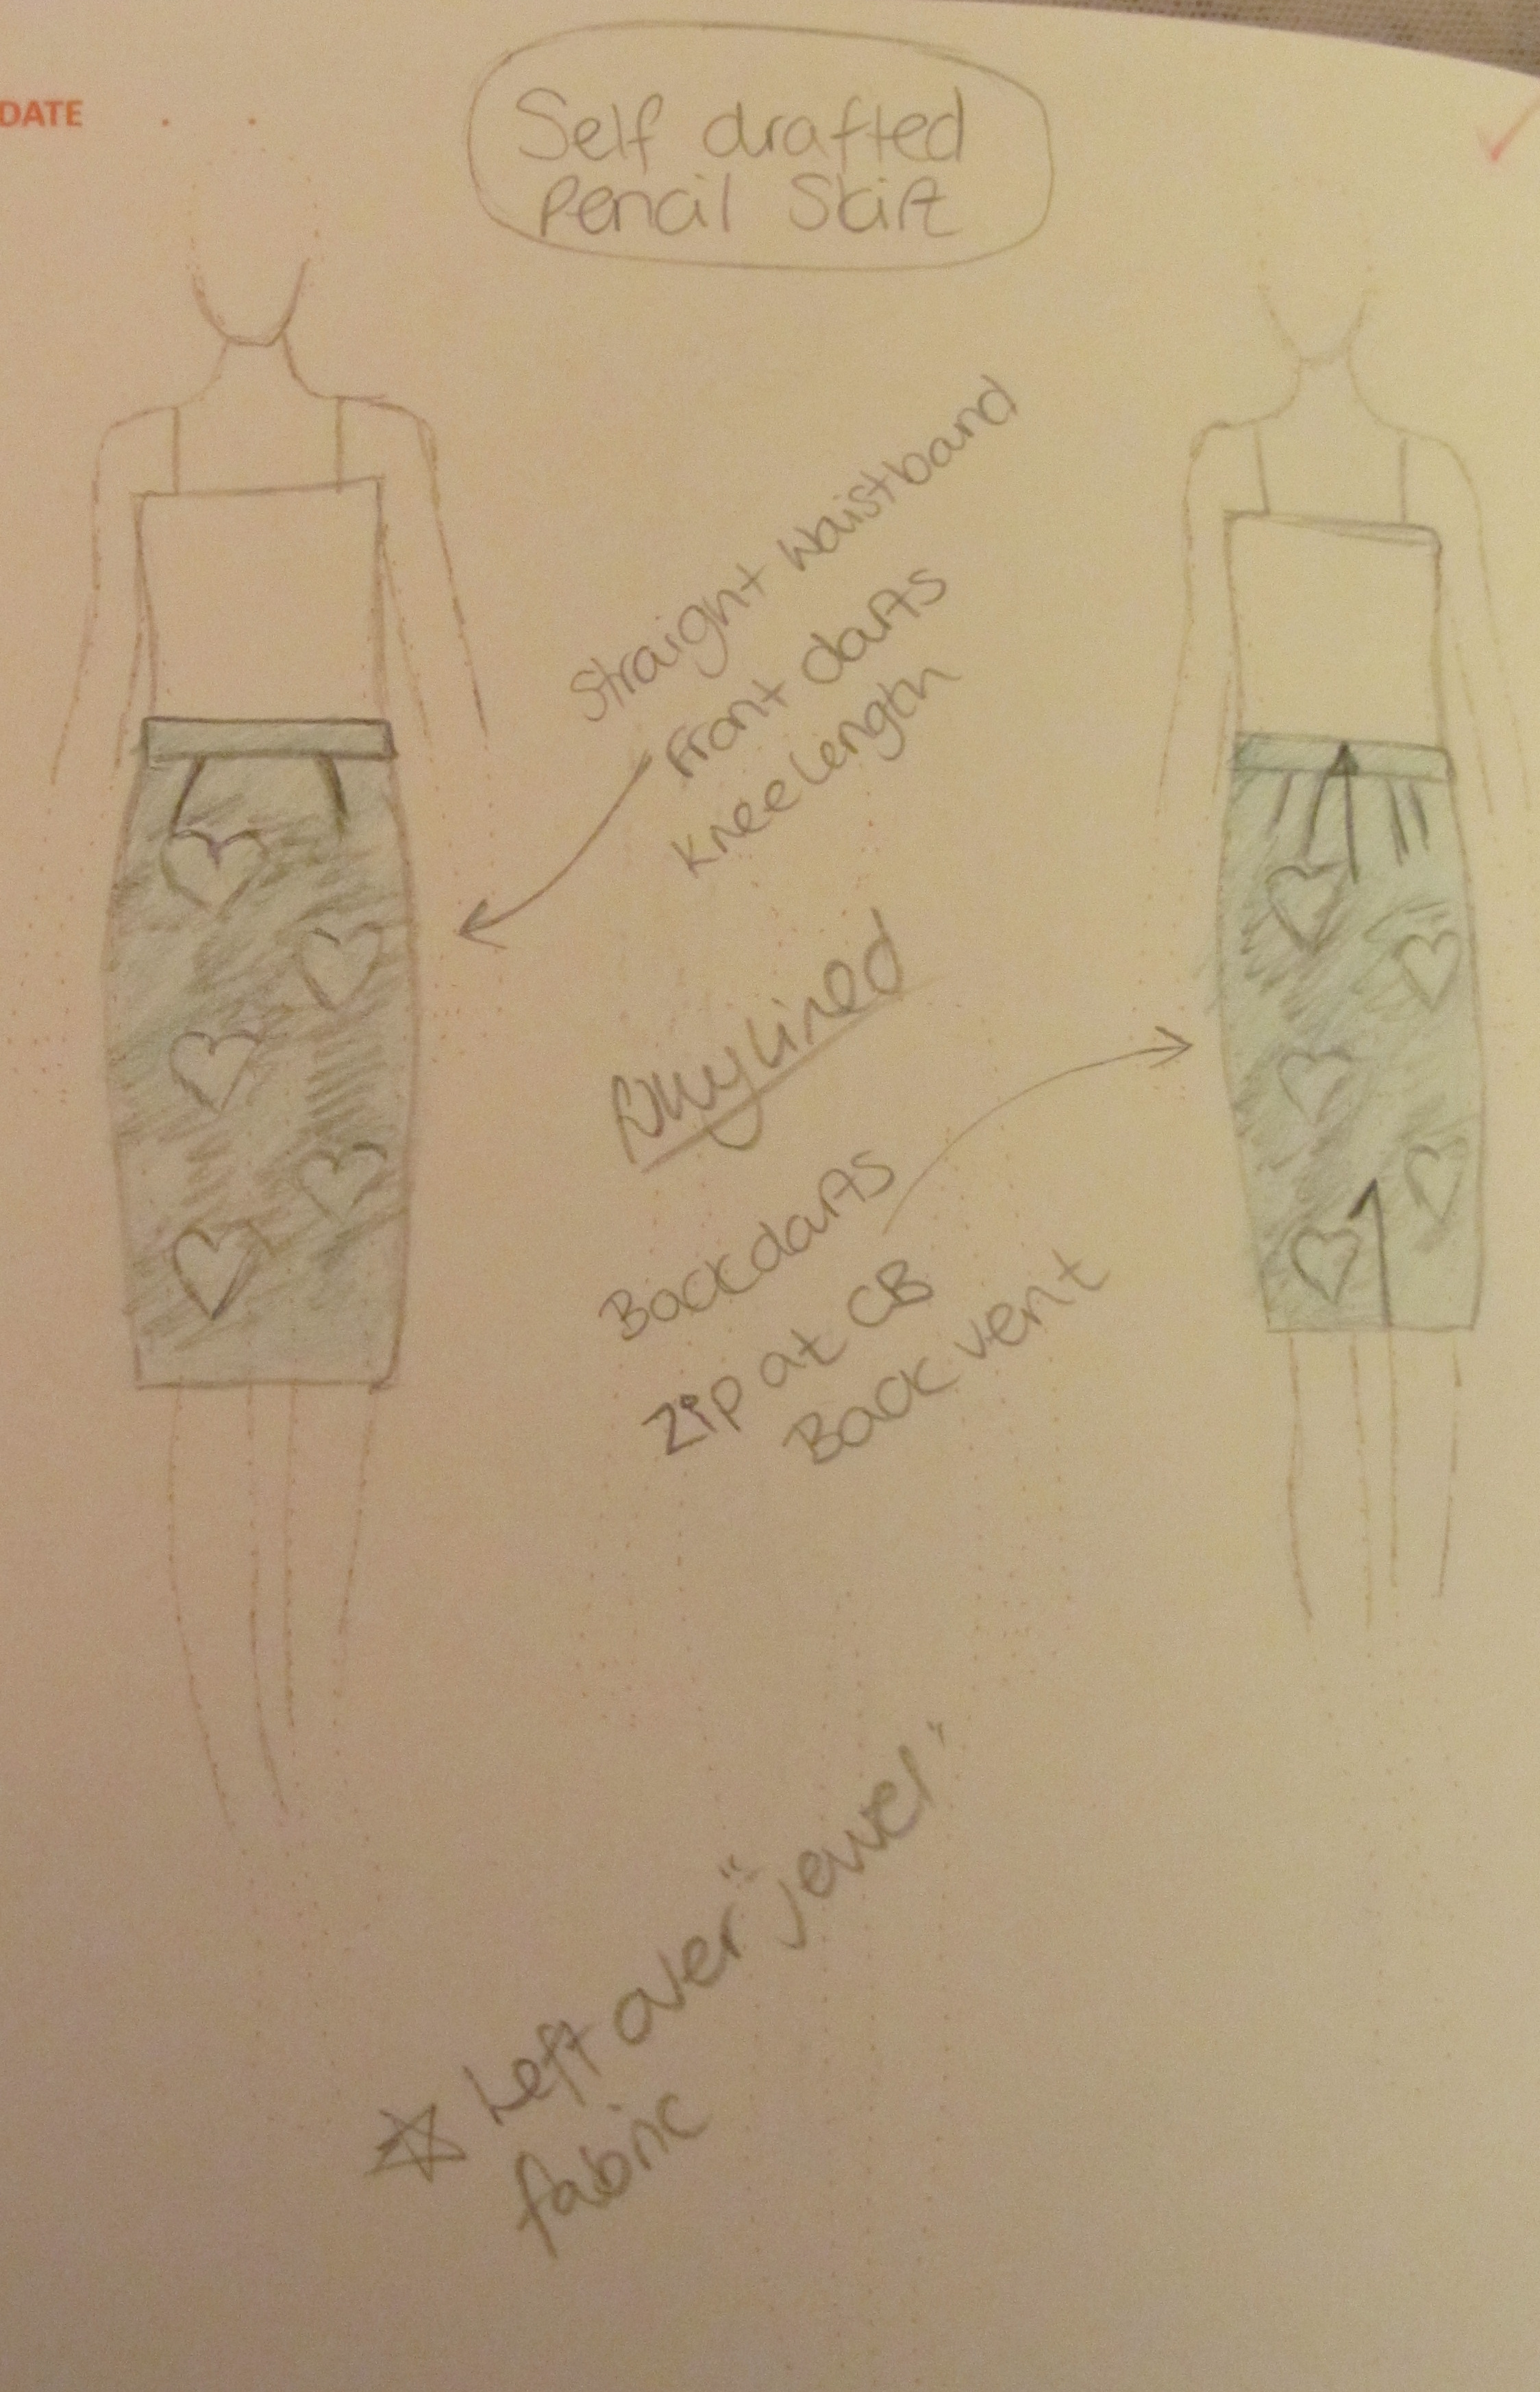 Self drafted pencil skirt sketch